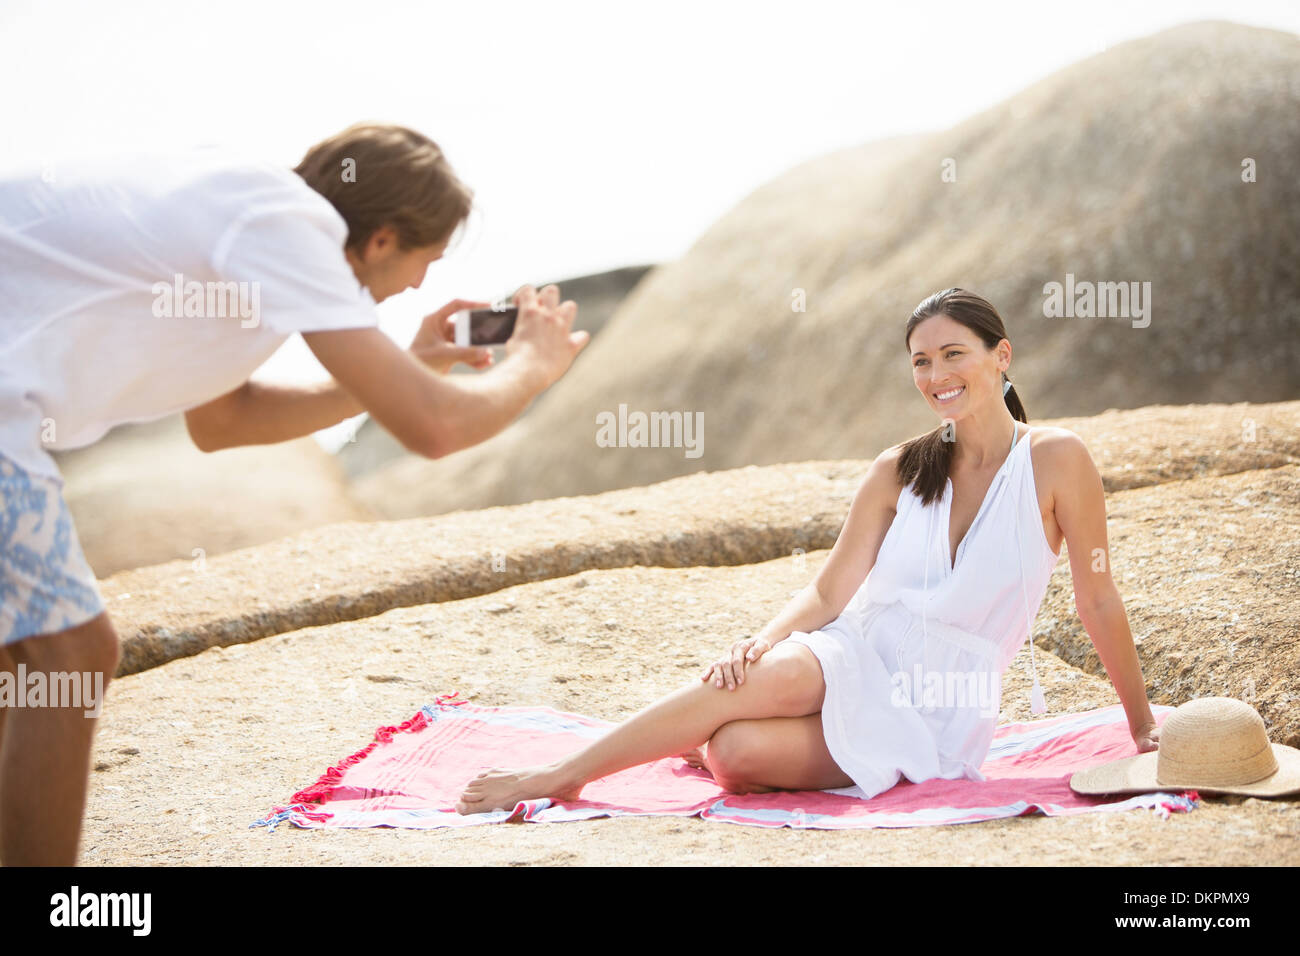 Man taking picture of girlfriend on beach Photo Stock